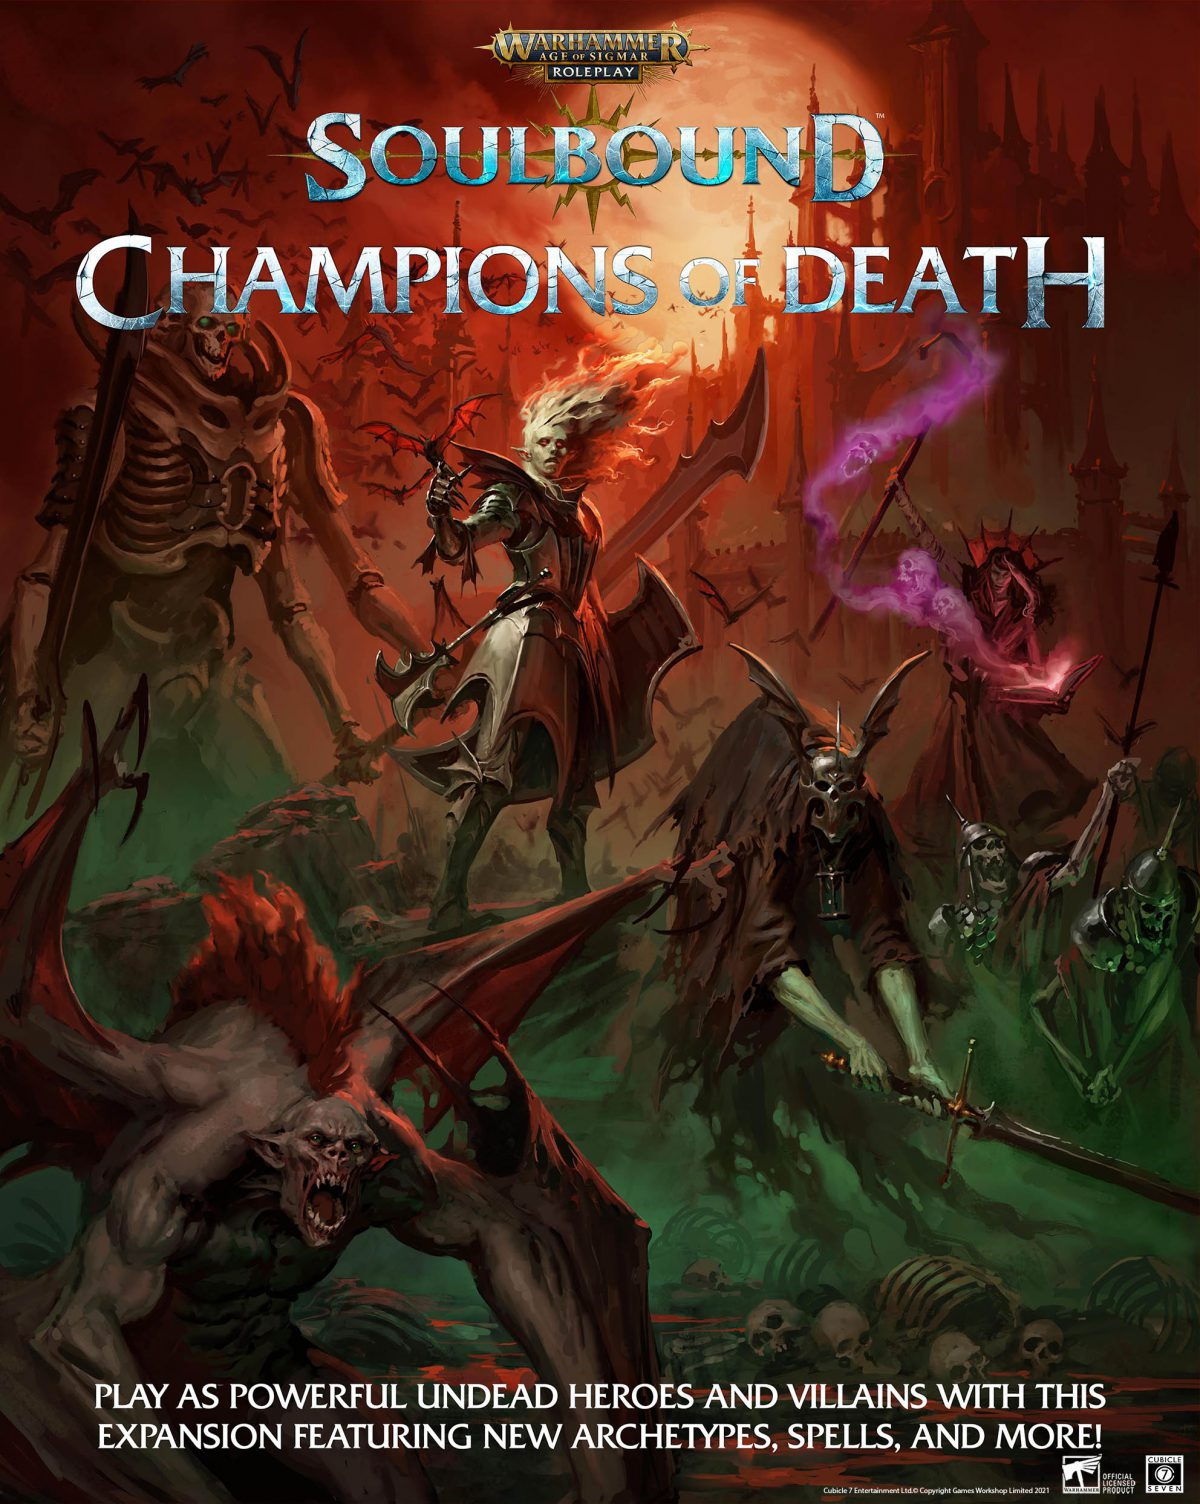 AoS: Soulbound, Champions of Death